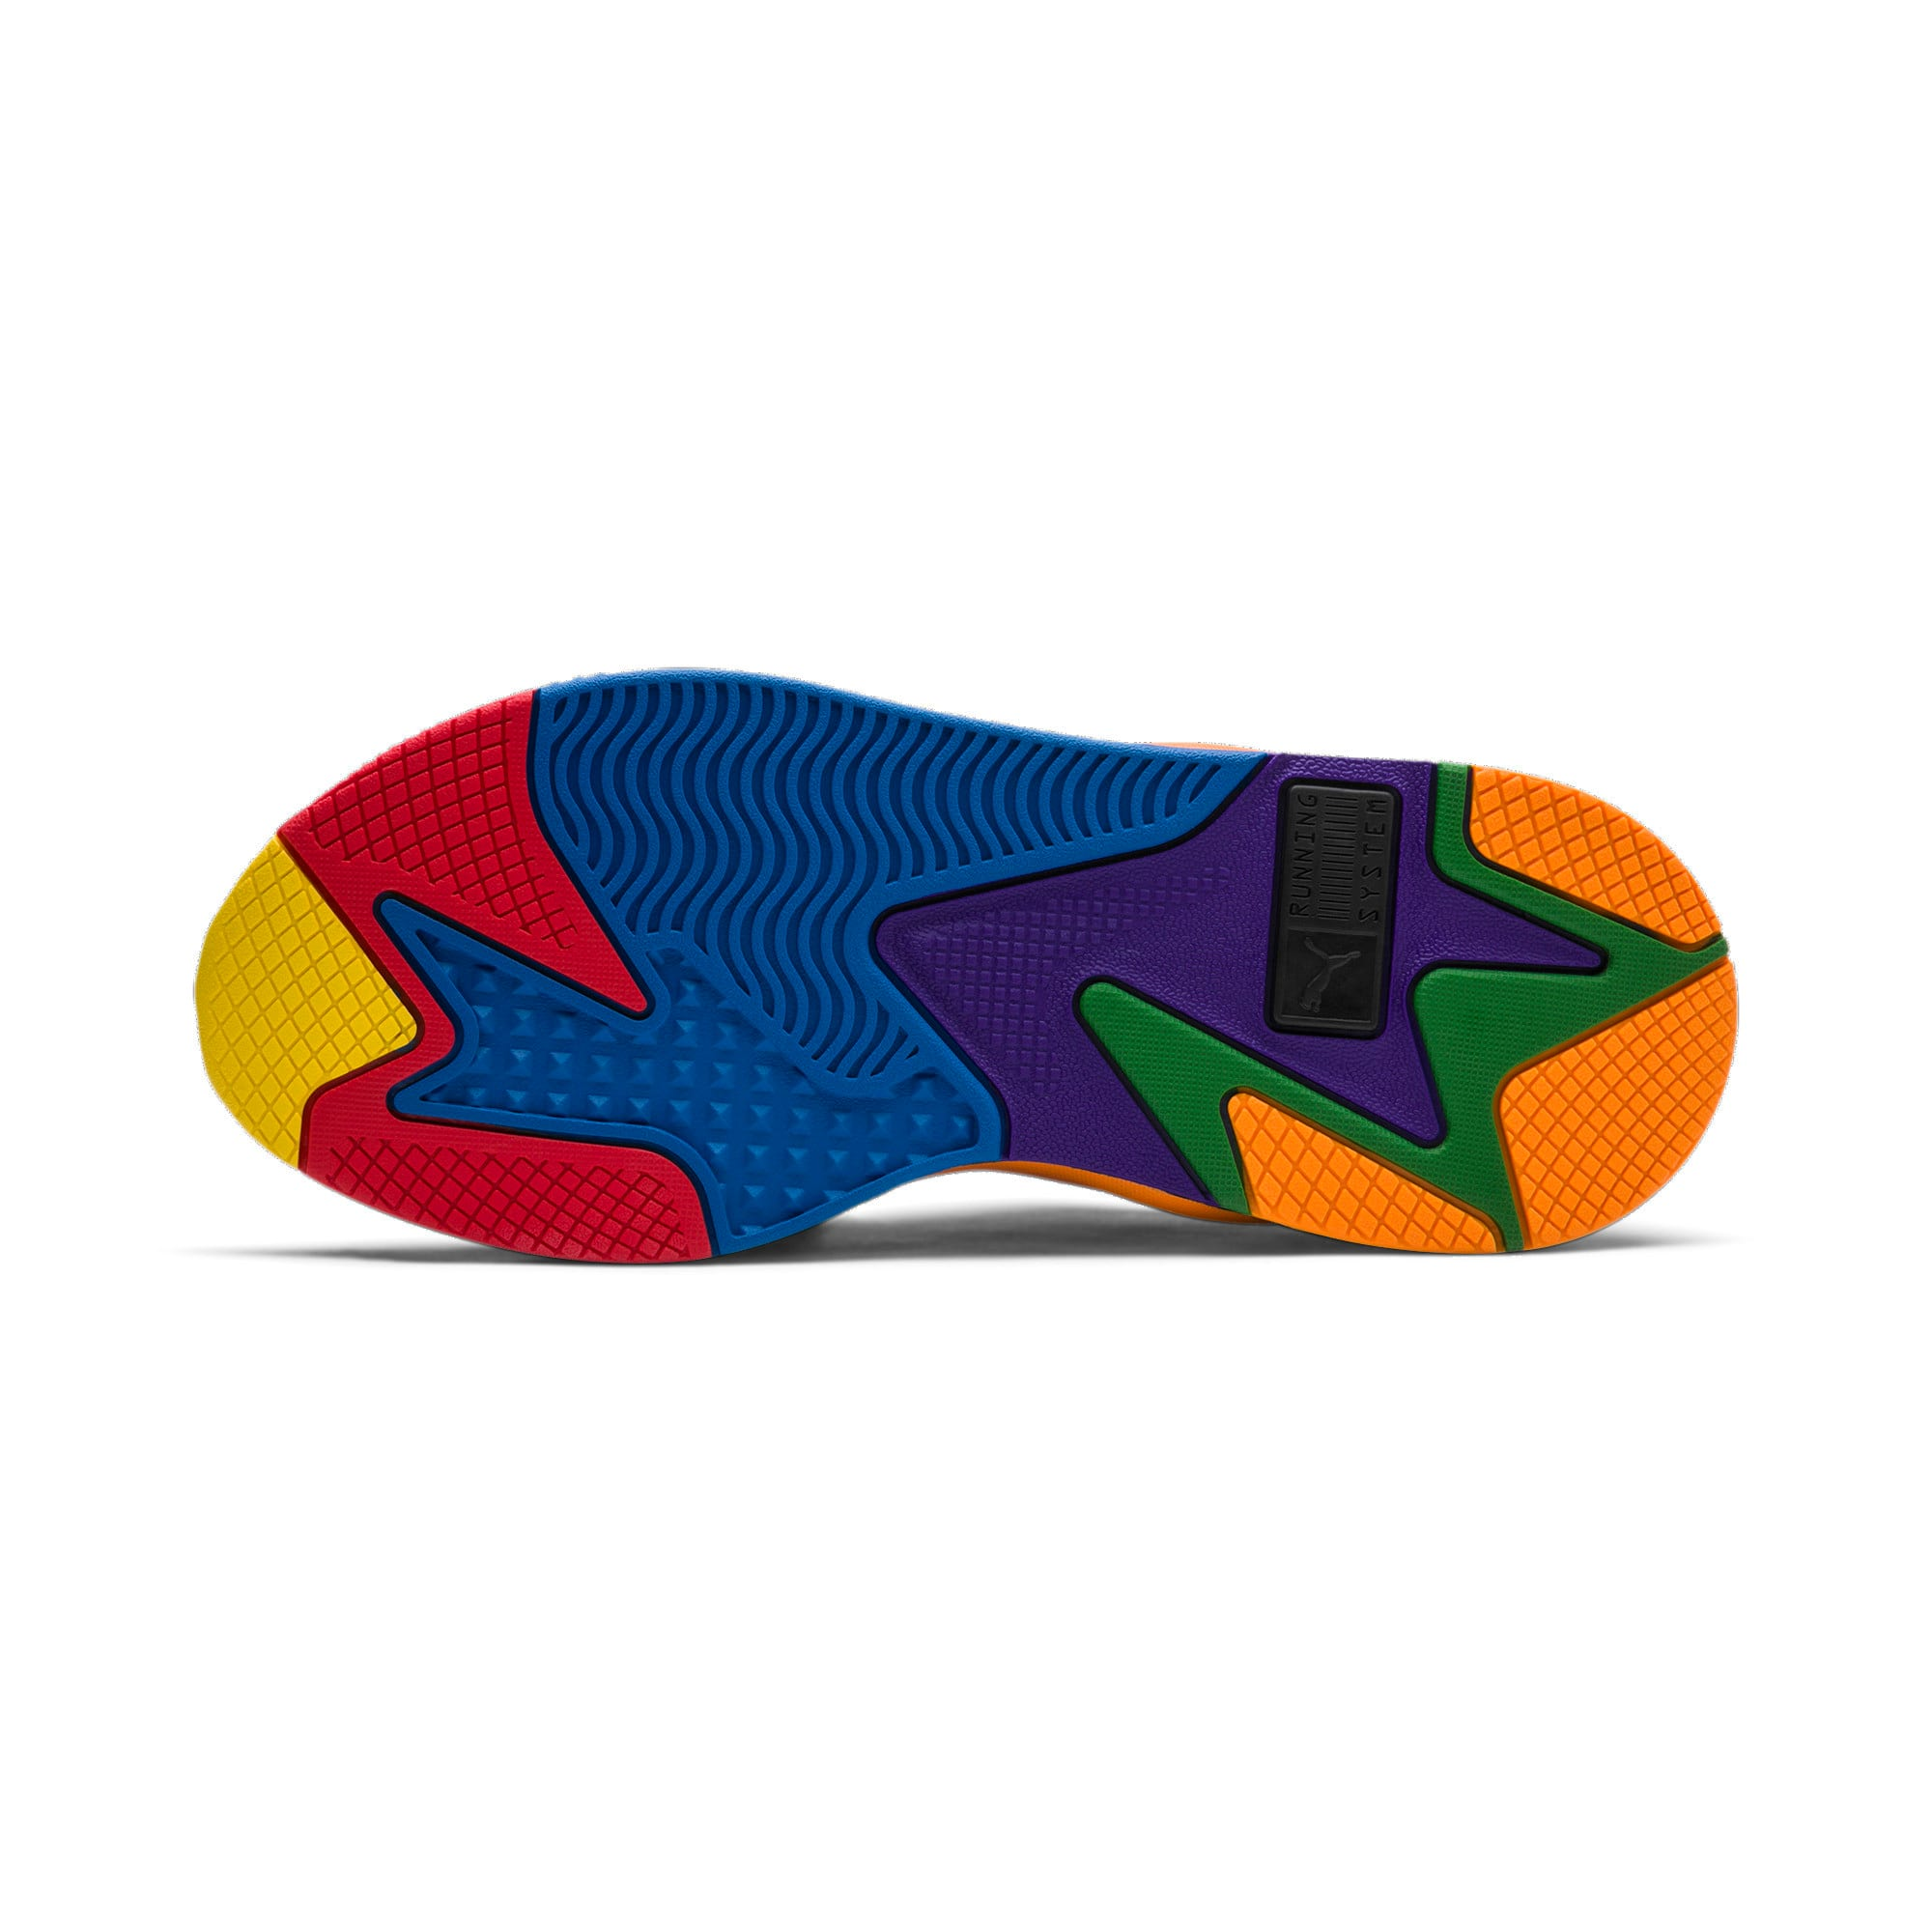 Thumbnail 4 of PUMA x TETRIS RS-X スニーカー, Puma Black-Luminous Blue, medium-JPN